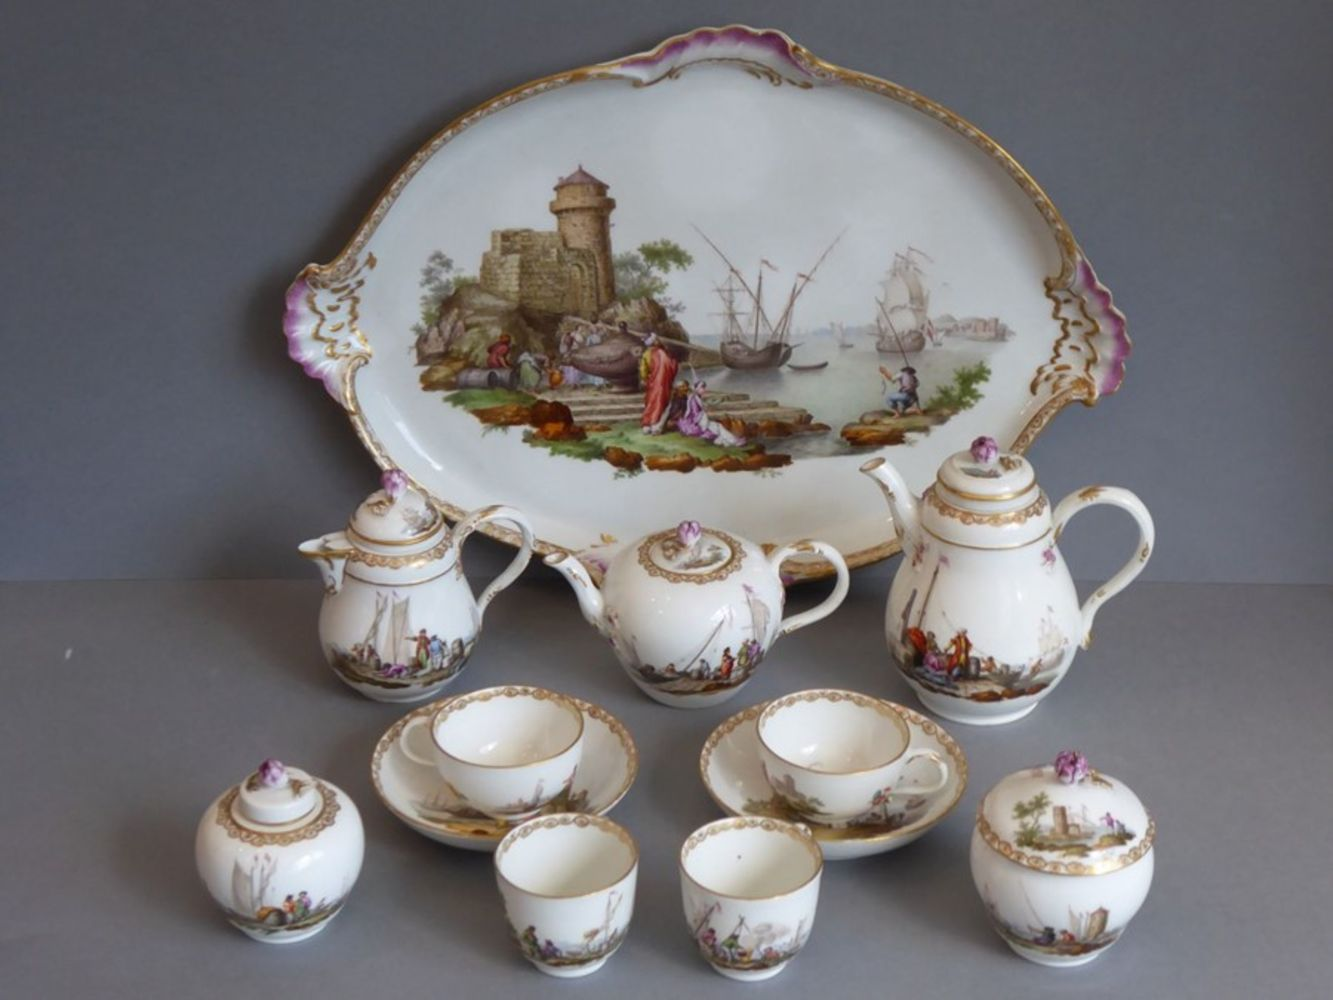 Cotswold Country House Auction Sale of Antiques, Fine Art, Objets d'Art and Modern Design Furniture - Tayler & Fletcher